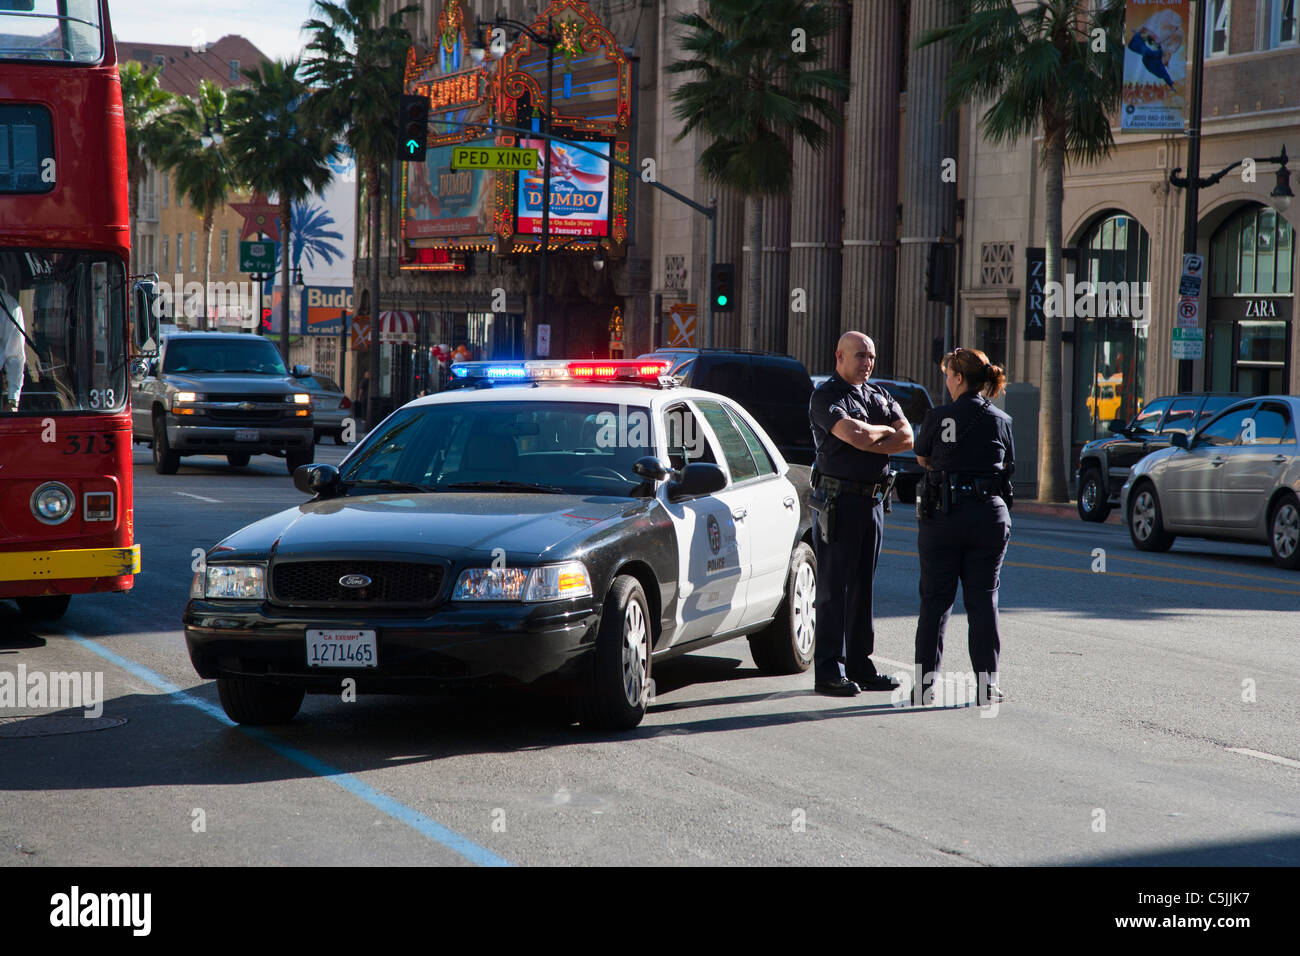 Police Car Lights Wallpaper Lapd Police Car With Lights Flashing In Hollywood Los